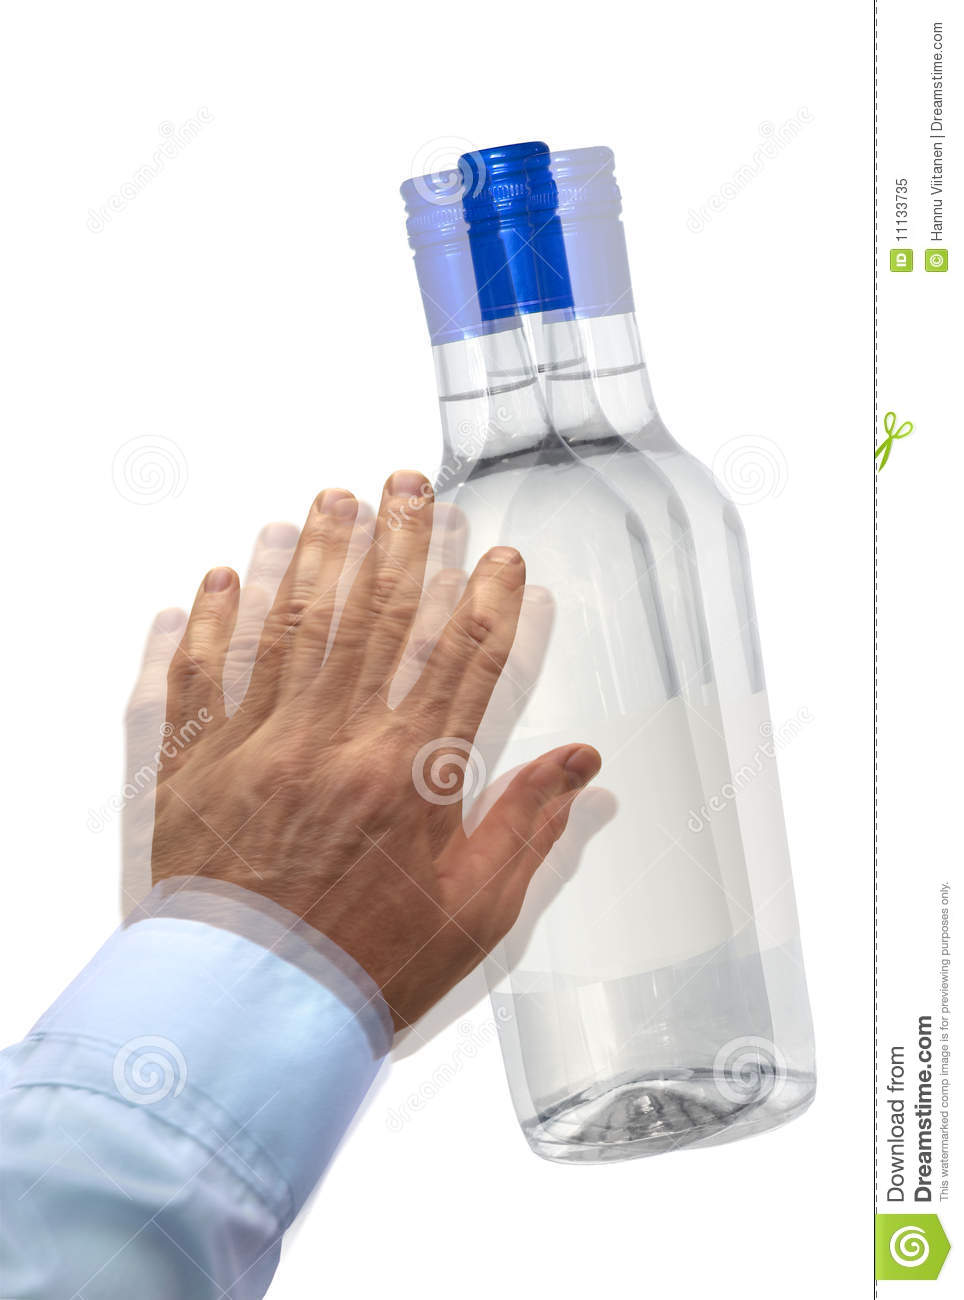 Feeling Drunk Royalty Free Stock Photo - Image: 11133735